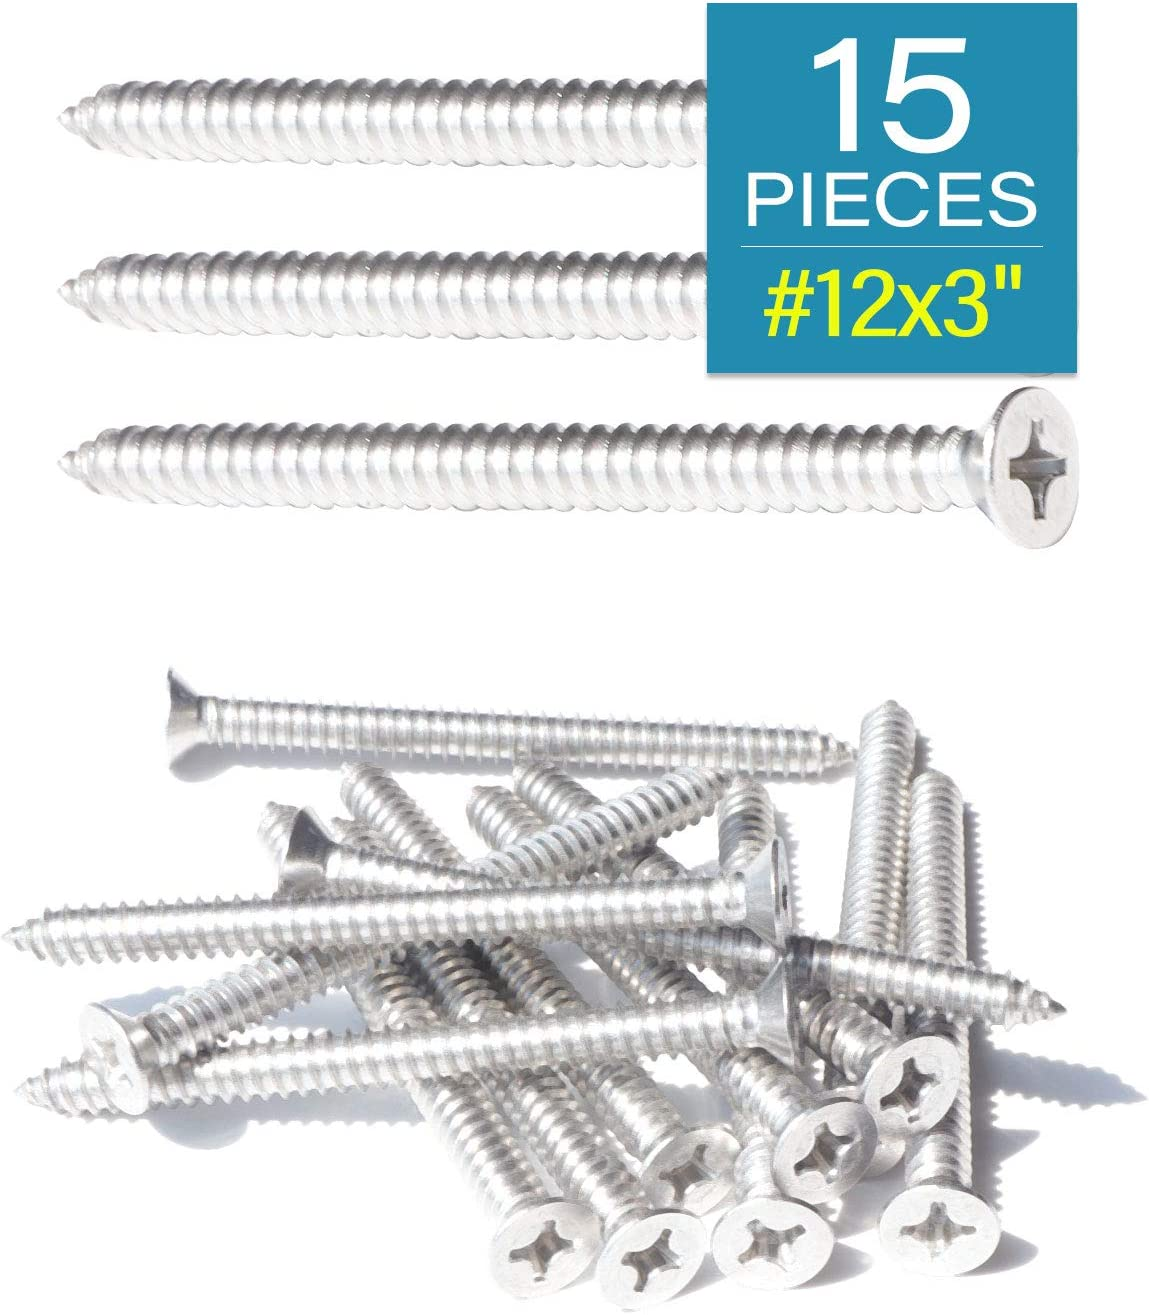 IMScrews 15pcs #12 x 3 Stainless Steel Countersunk Self Tapping Screws 75mm 304 Stainless Flat Head Phillips Wood Screws 18-8